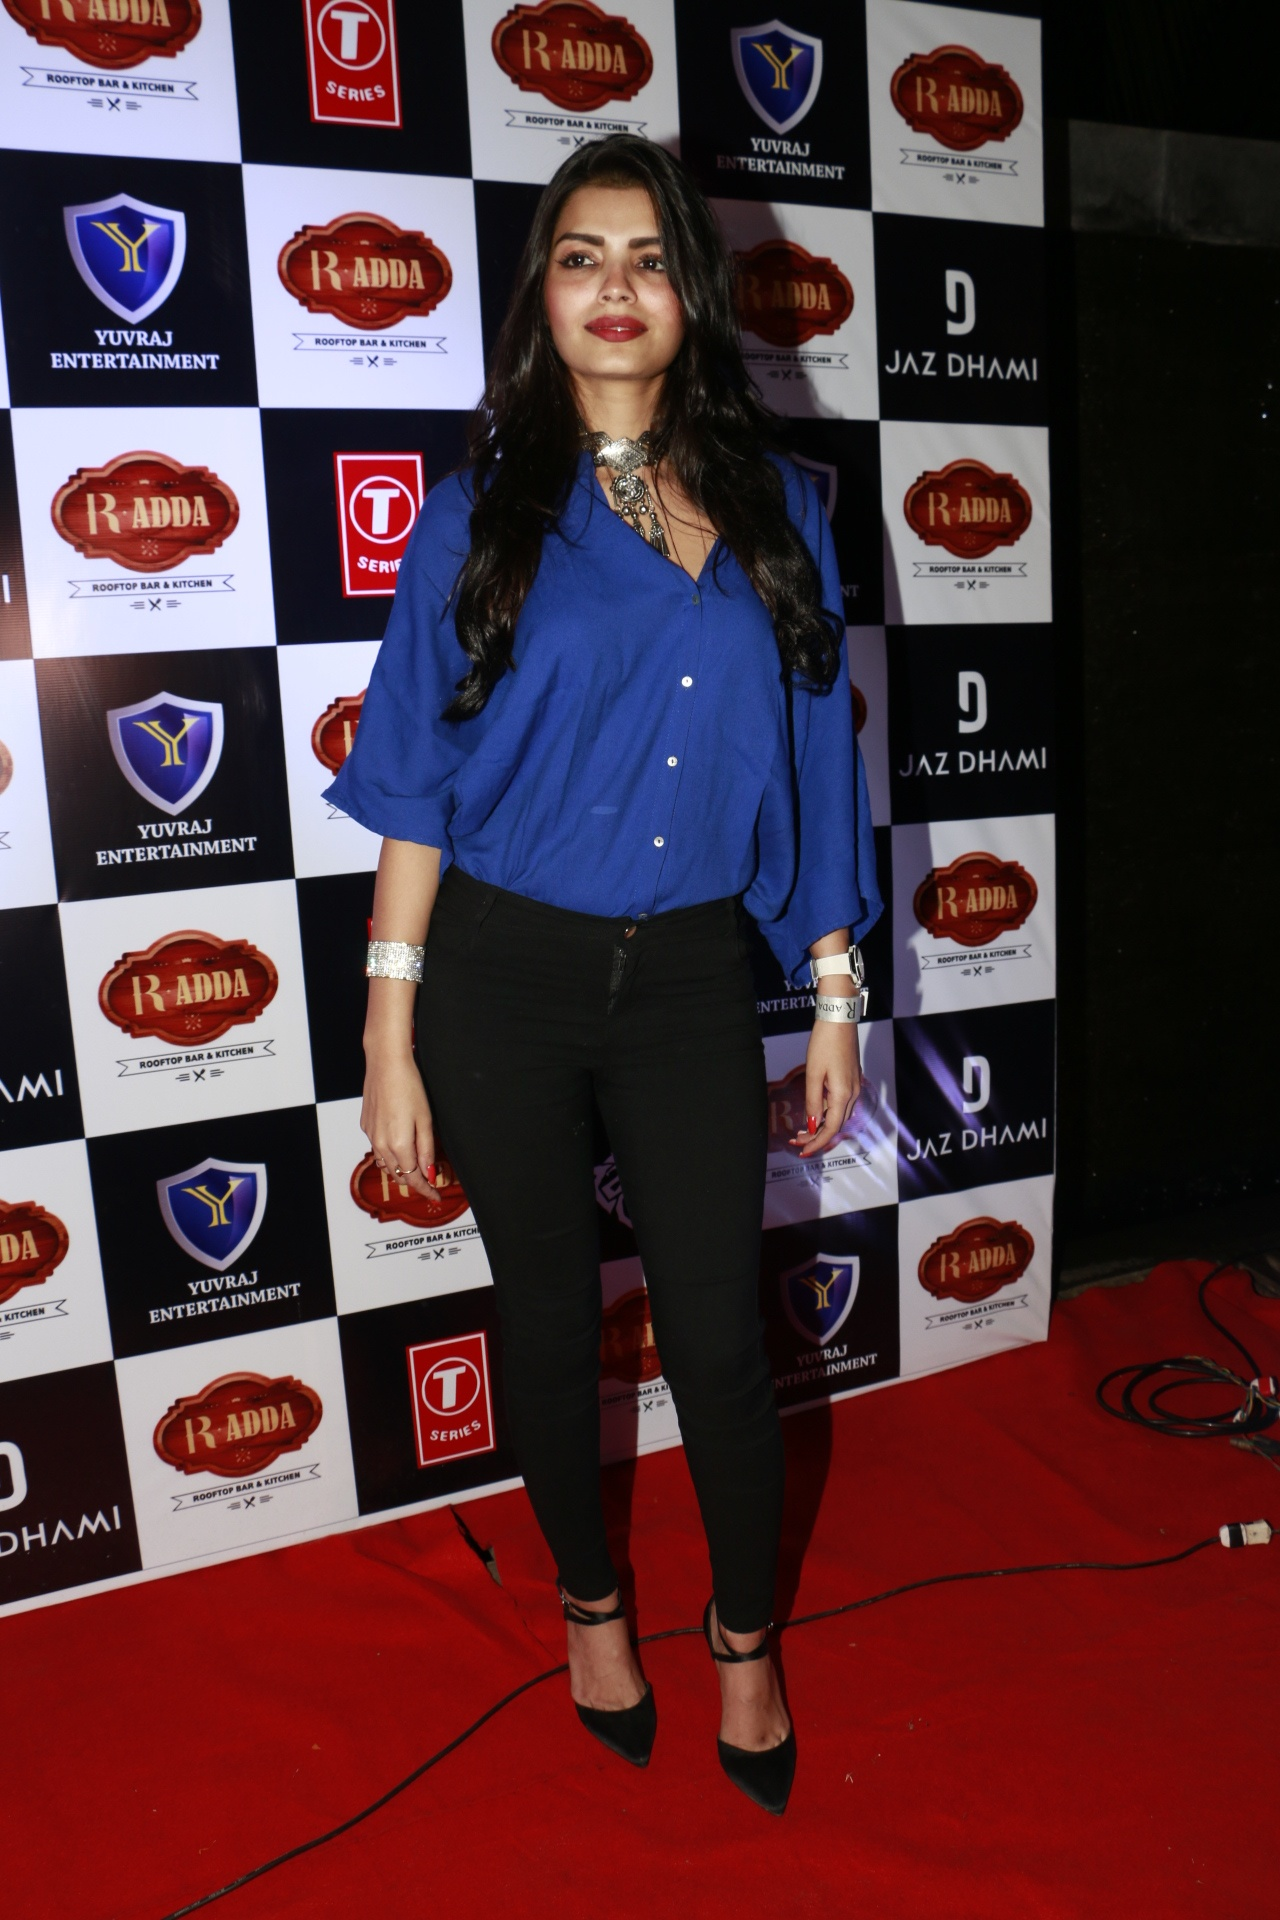 sonali-raut-at-the-song-lauch-of-desi-girls-do-it-better